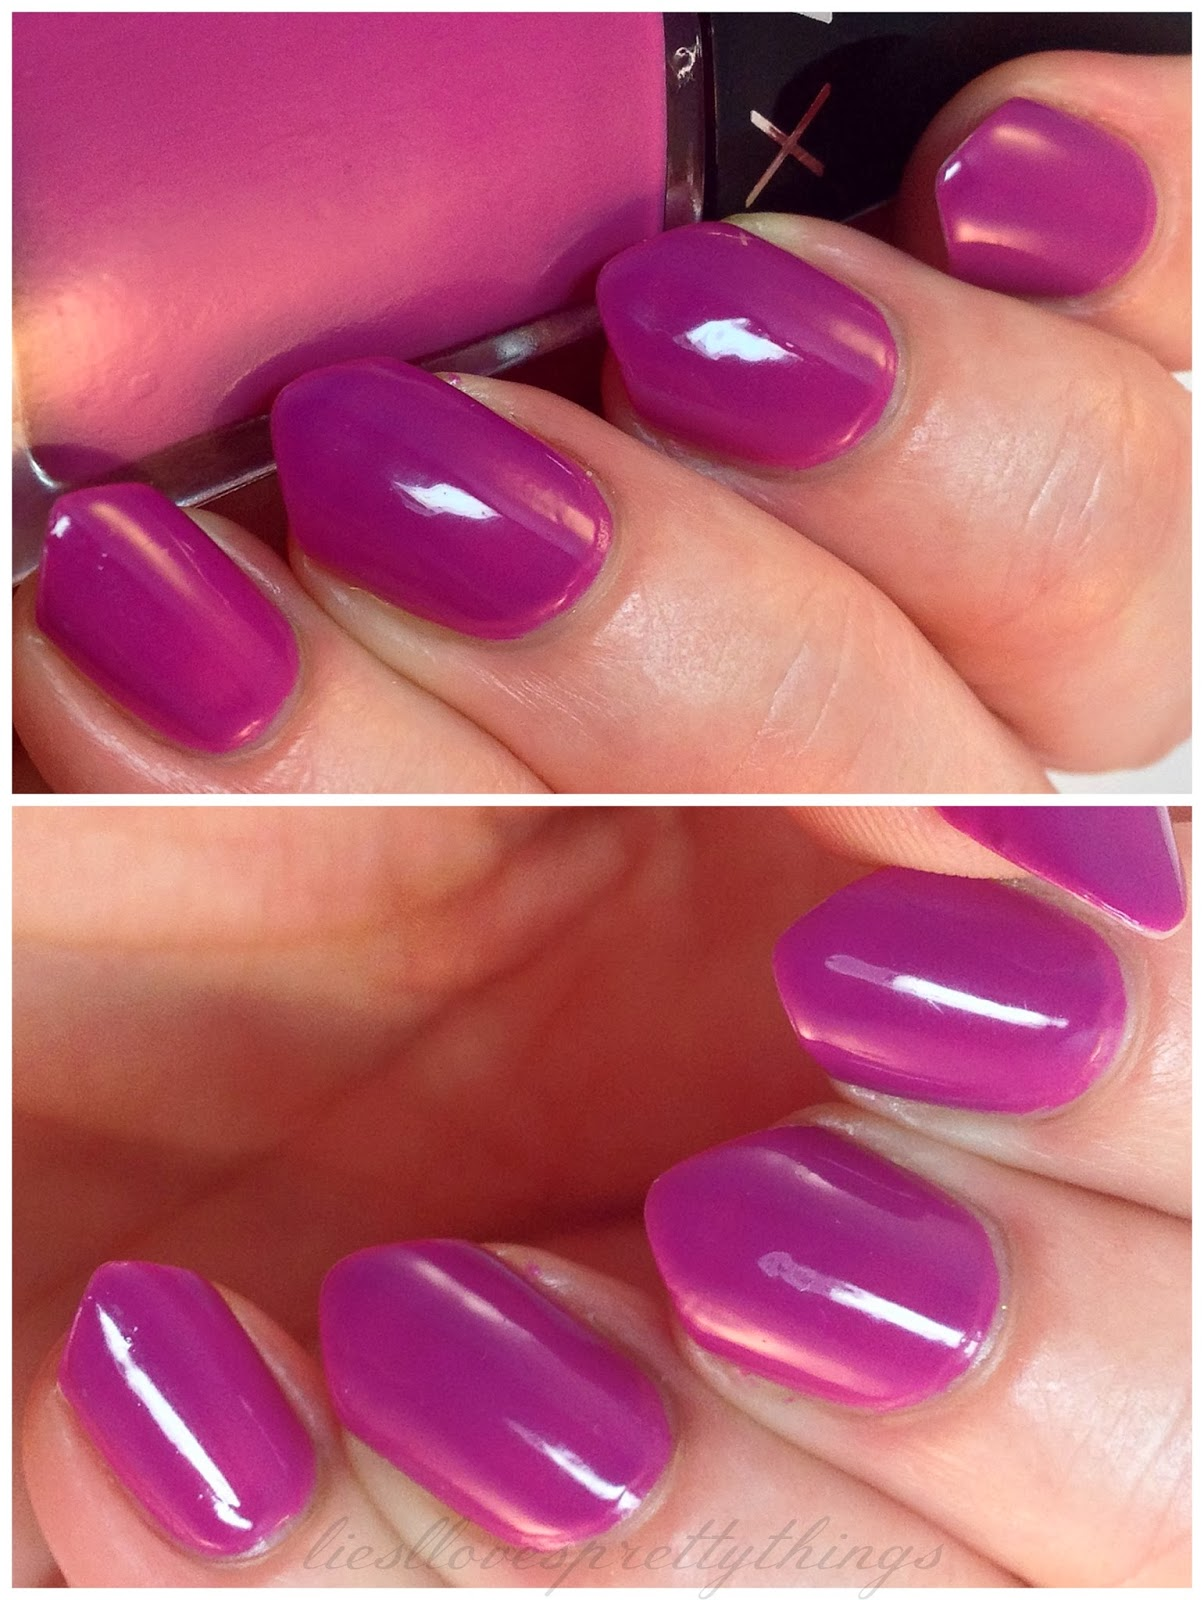 LVX Orchid swatch and review